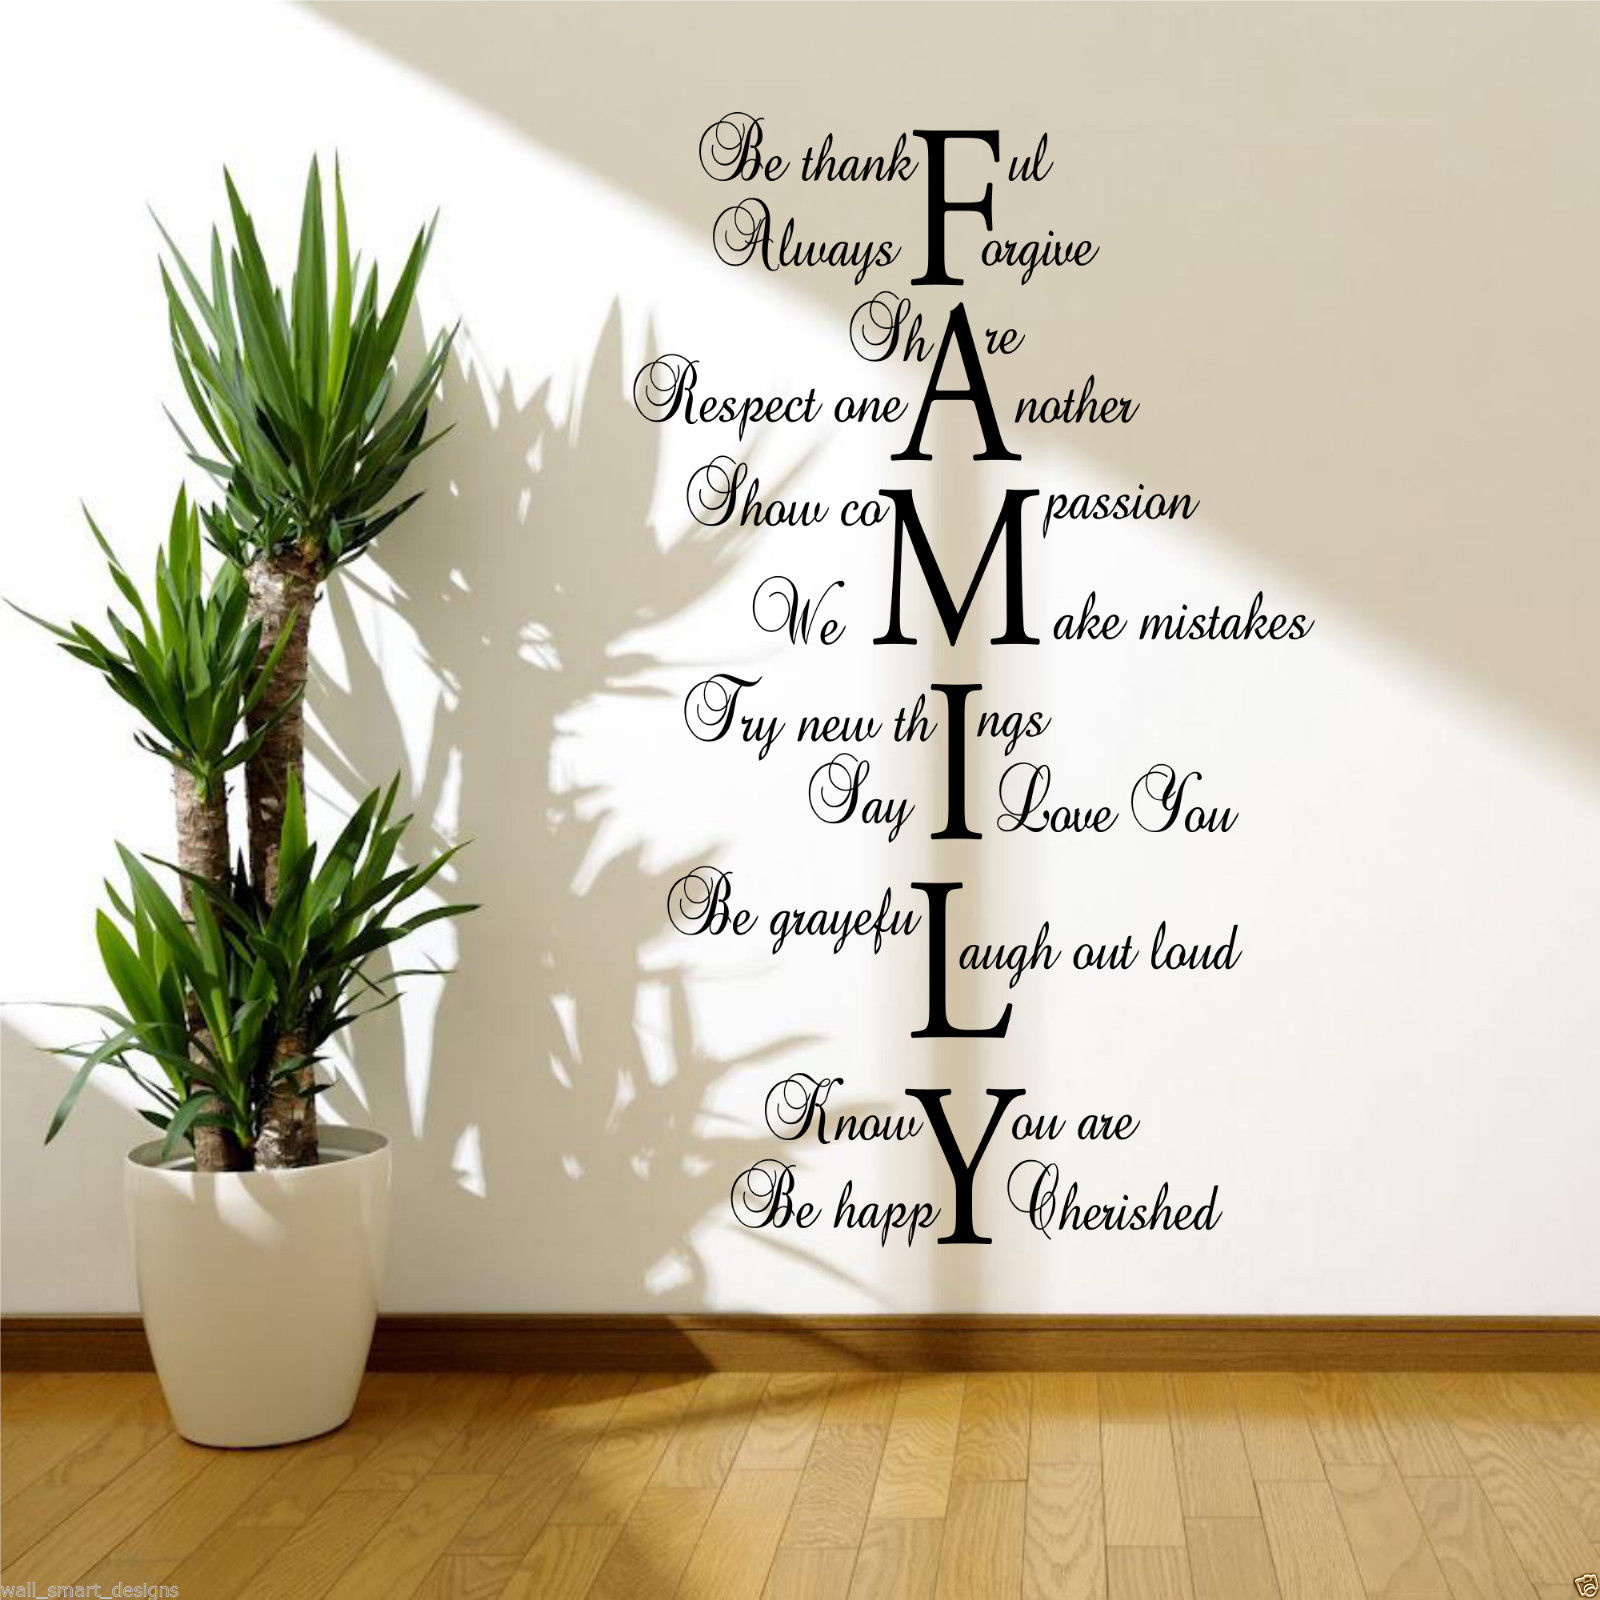 Charming Image Is Loading FAMILY LOVE LIFE Wall Art Sticker Quote Room